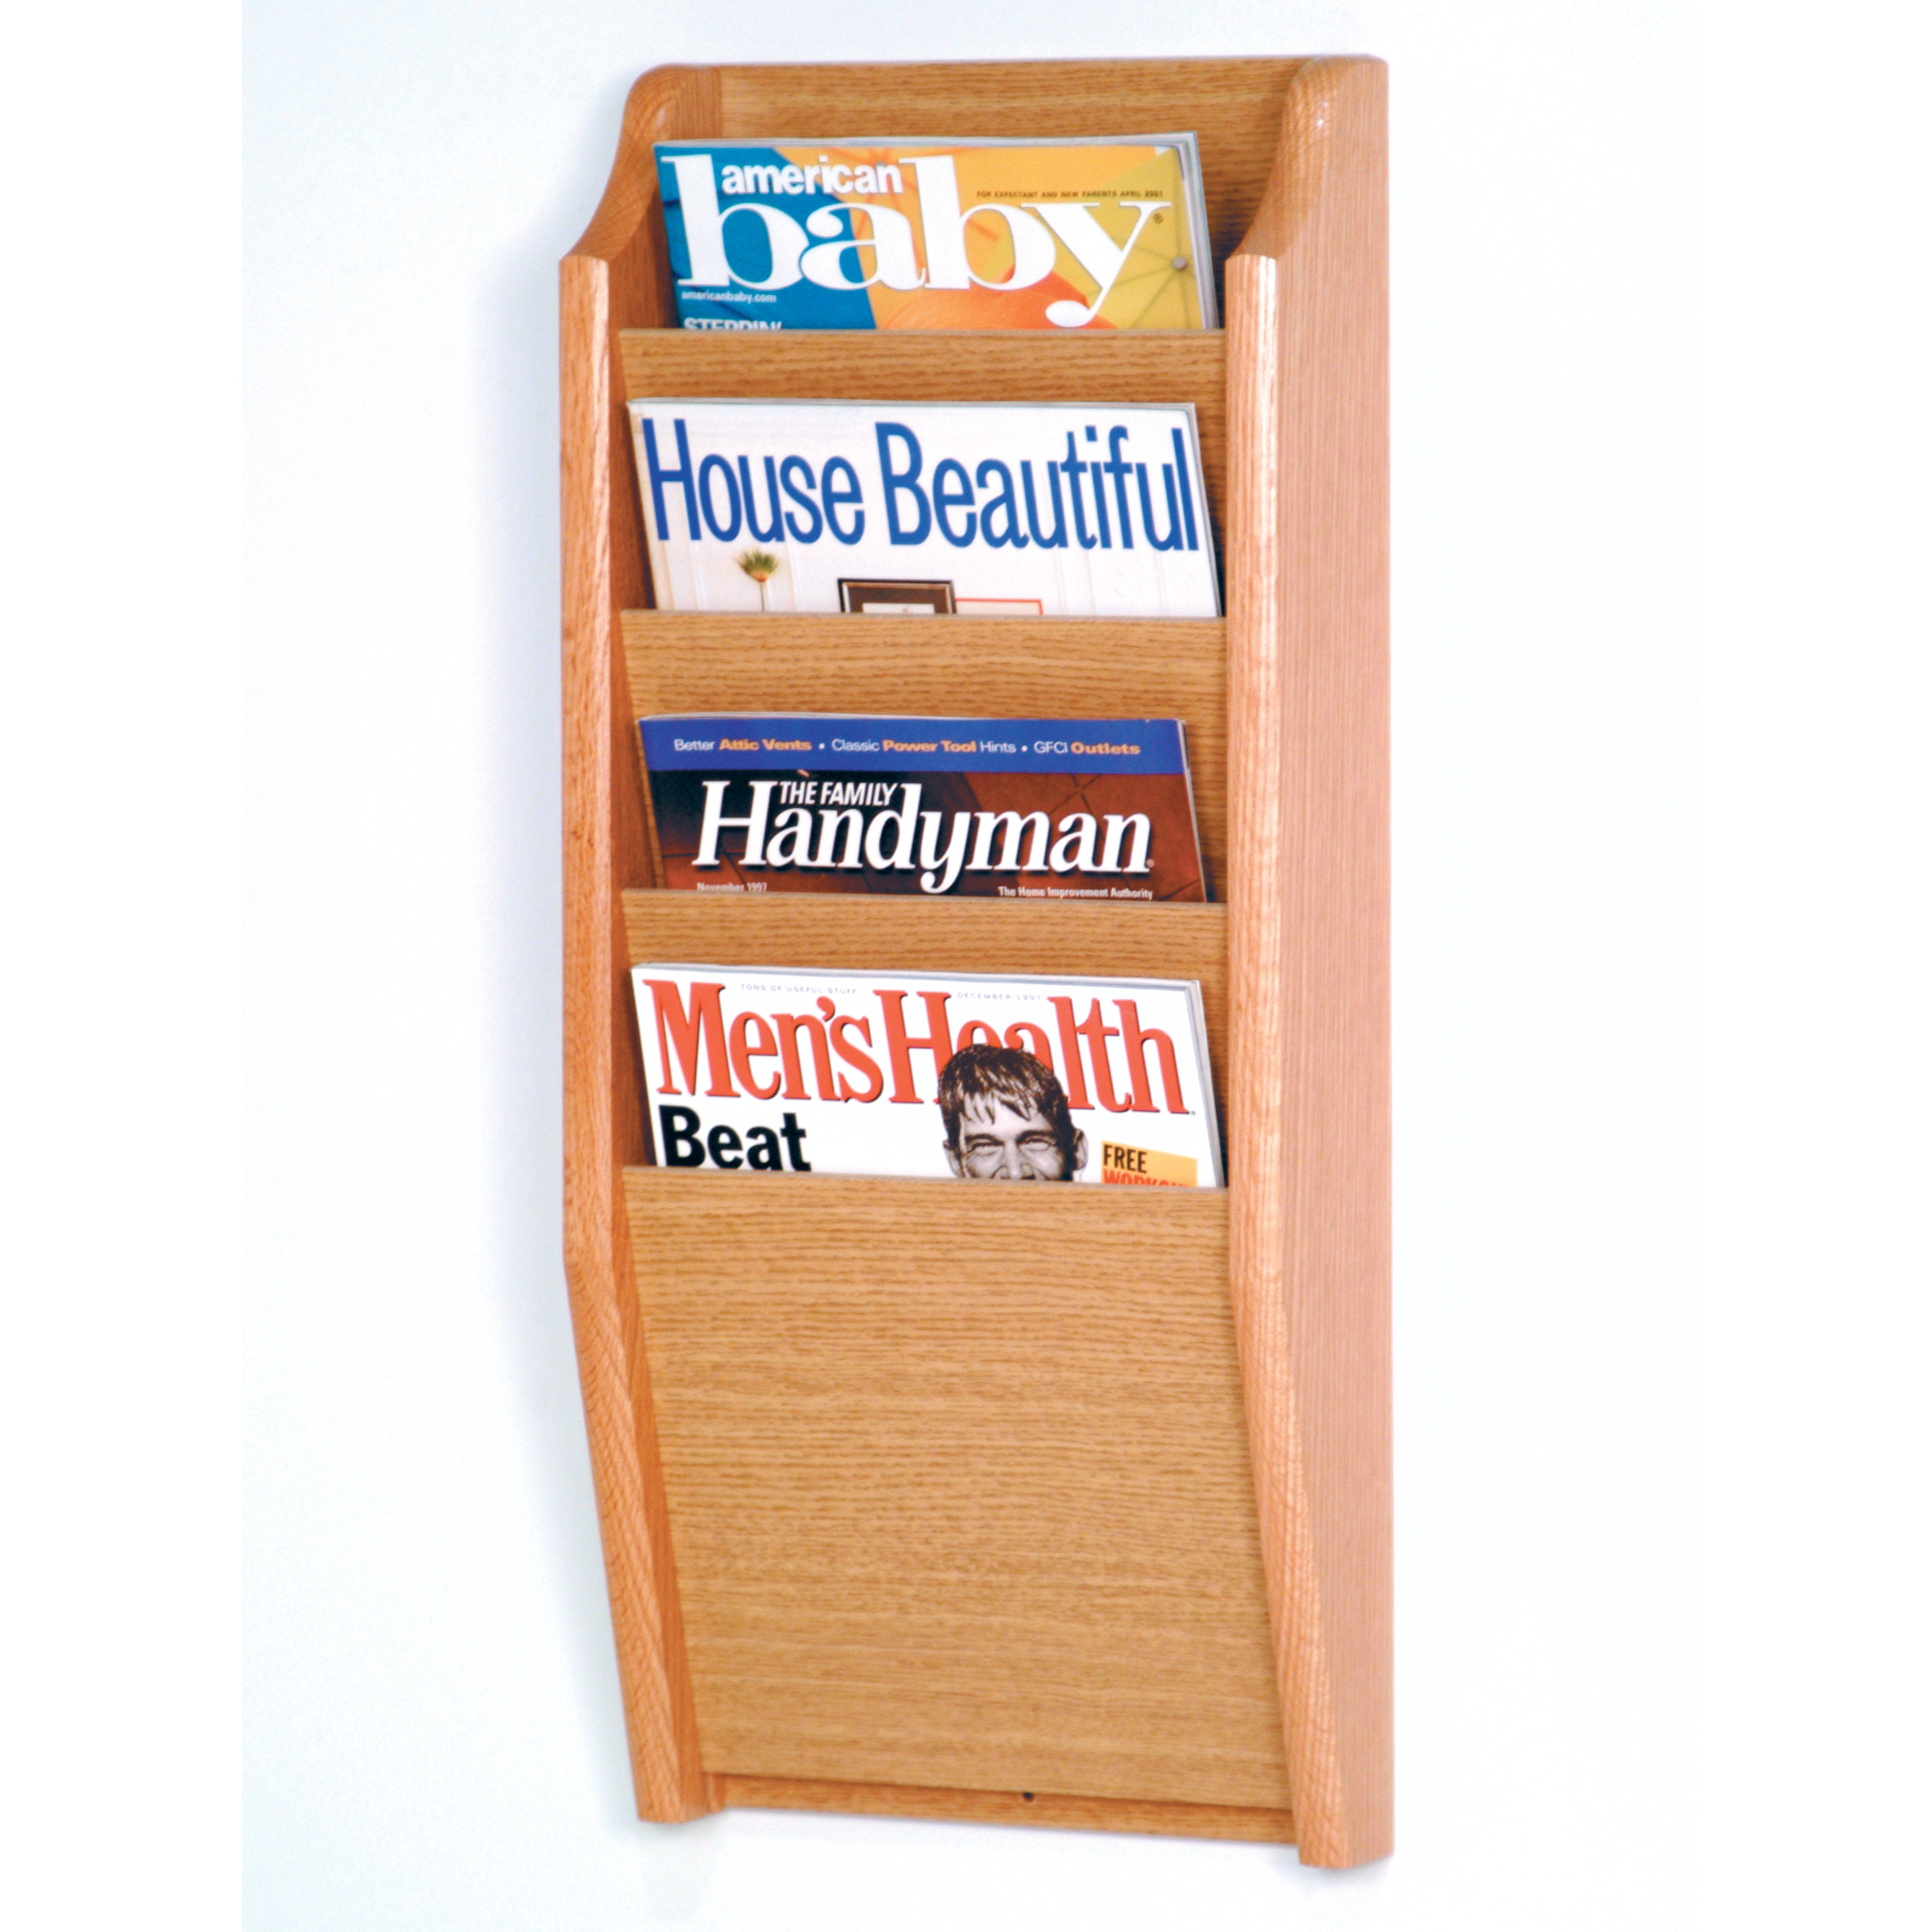 holder mount trade pockets wall chrome four sale counter standin desk clear rack adjustable plastic furniture clr display of wood literature brochure furnitureclear full rp for mounted magazine pamphlet size racks acrylic w flyers